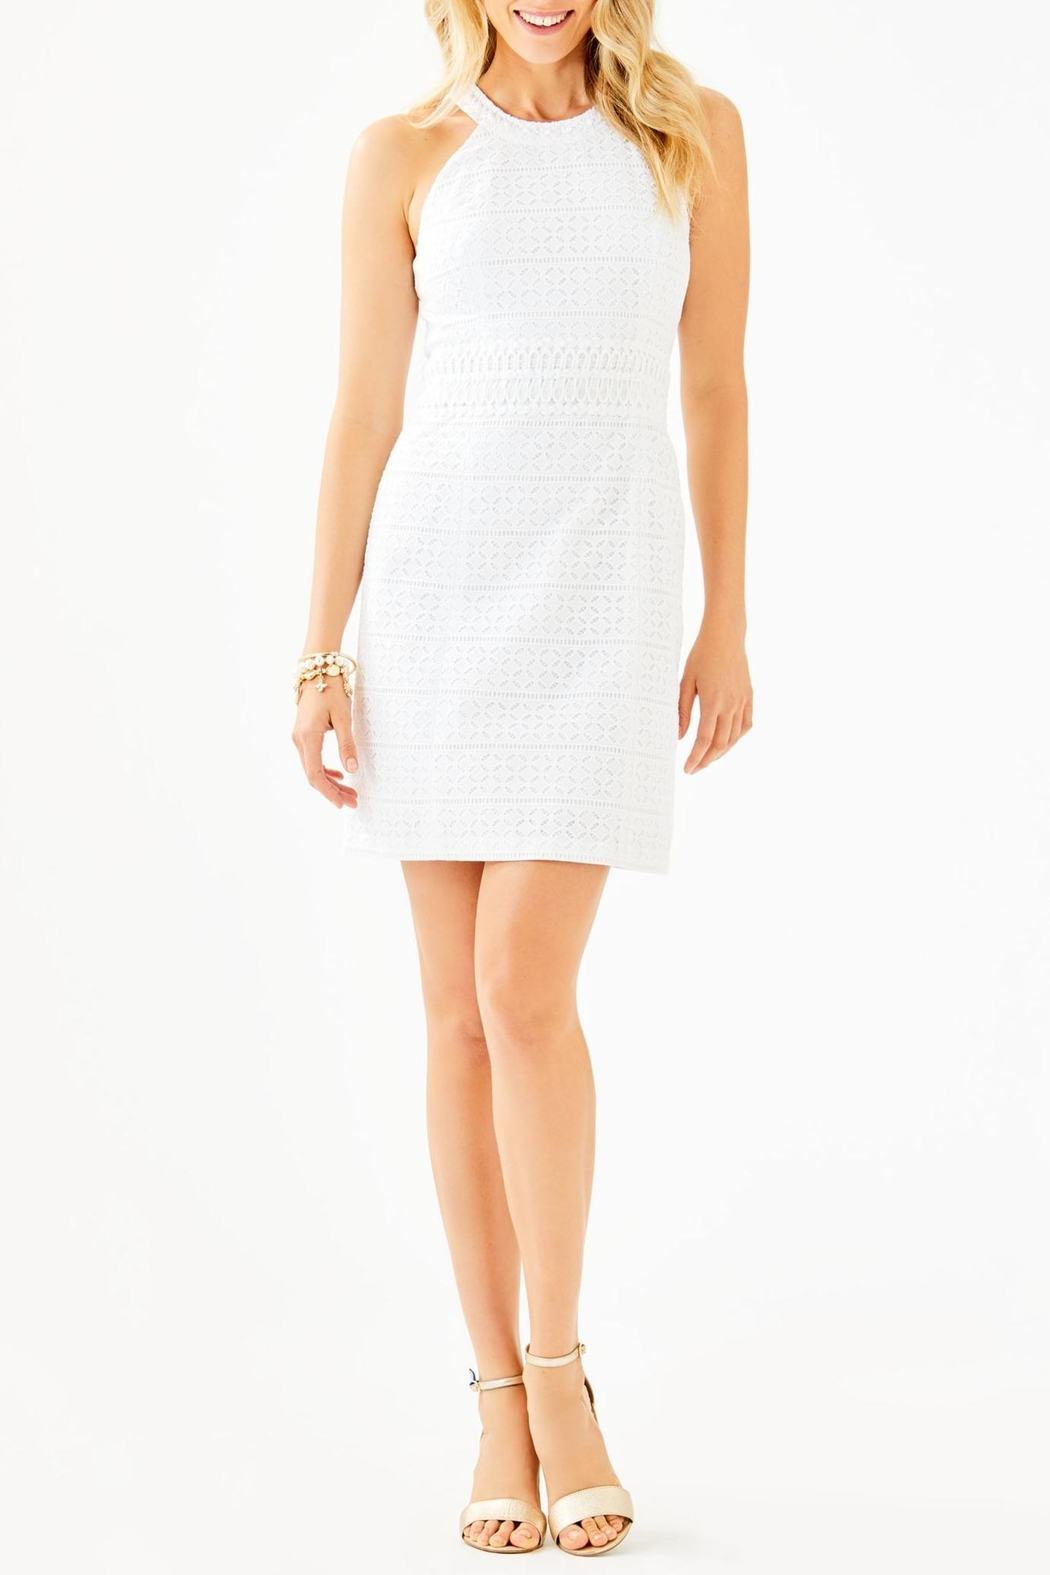 Lilly Pulitzer Ashlyn Shift Dress - Back Cropped Image